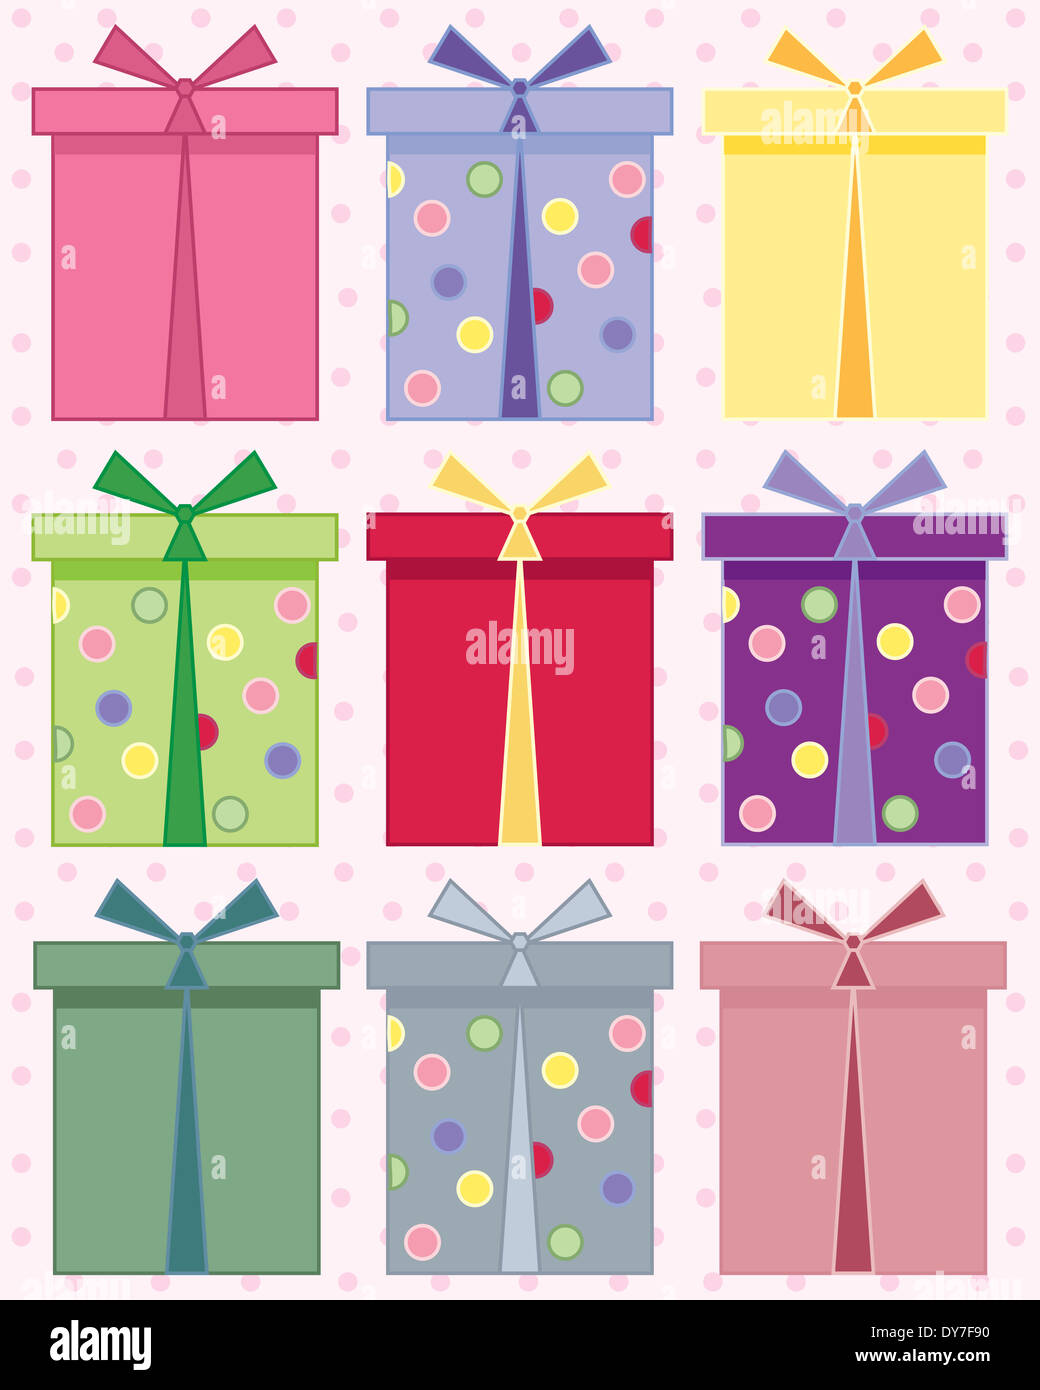 An Illustration Of Abstract Gift Boxes For Birthdays In Different Colors On A Pink Spotty Background